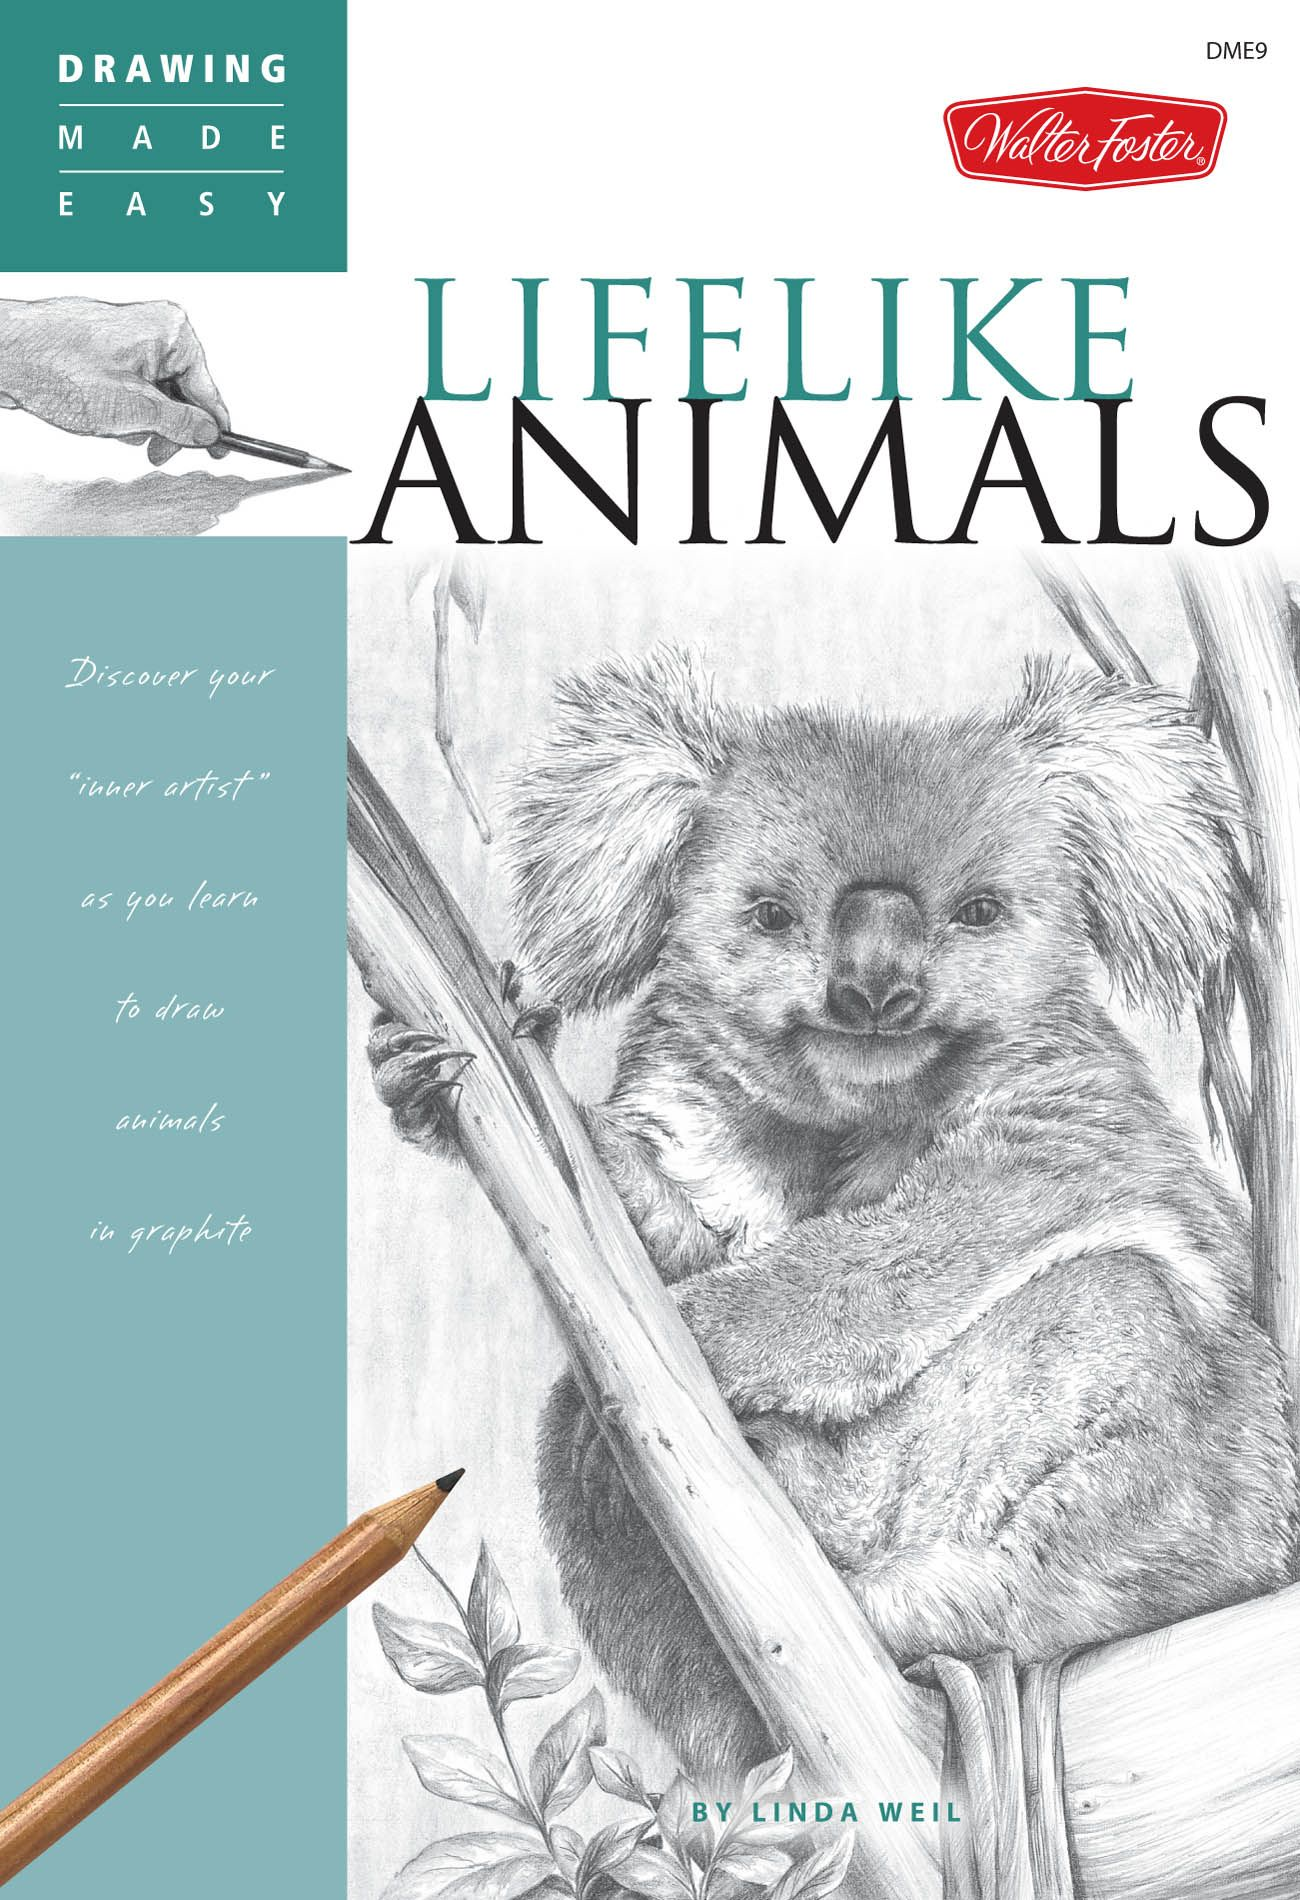 Drawing Made Easy: Lifelike Animals: Discover your ?inner artist? as you learn to draw animals in graphite By: Linda Weil